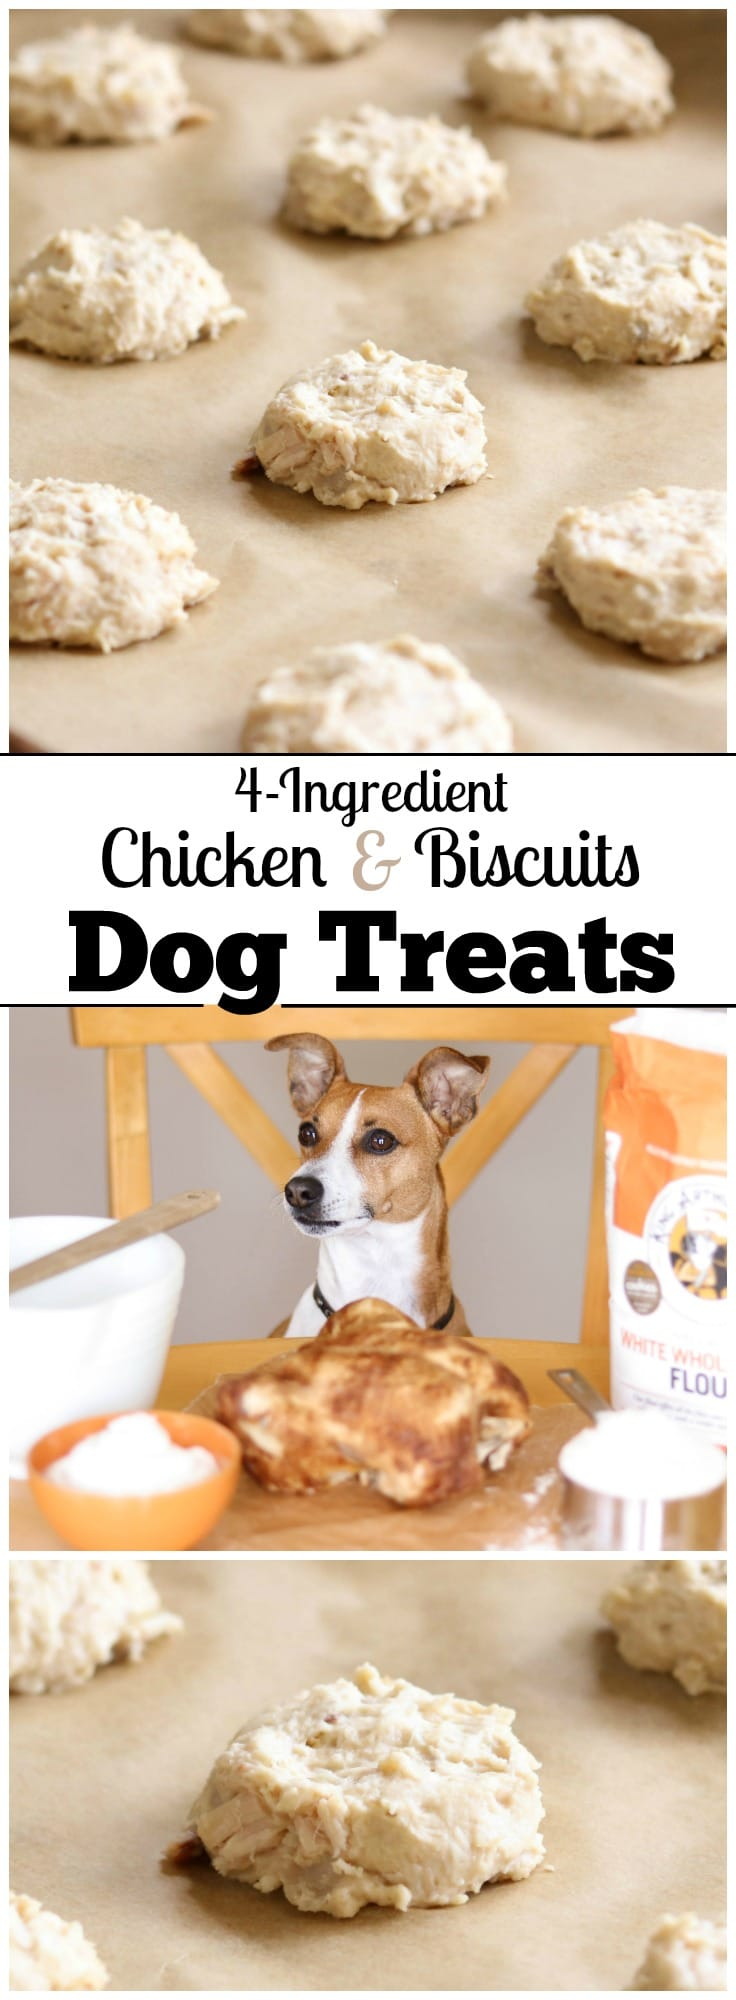 Perfect for using up leftover chicken! These easy Homemade Dog Treats are the doggy version of that classic comfort food, chicken and biscuits! Just store your leftover chicken in the freezer until you're ready to make these healthy dog treats. And there's no need to fuss with cookie cutters – these easy drop biscuits are so much faster! With just 4 ingredients, this dog treat recipe is ultra quick and easy, and these store beautifully in the freezer for weeks! | www.TwoHealthyKitchens.com